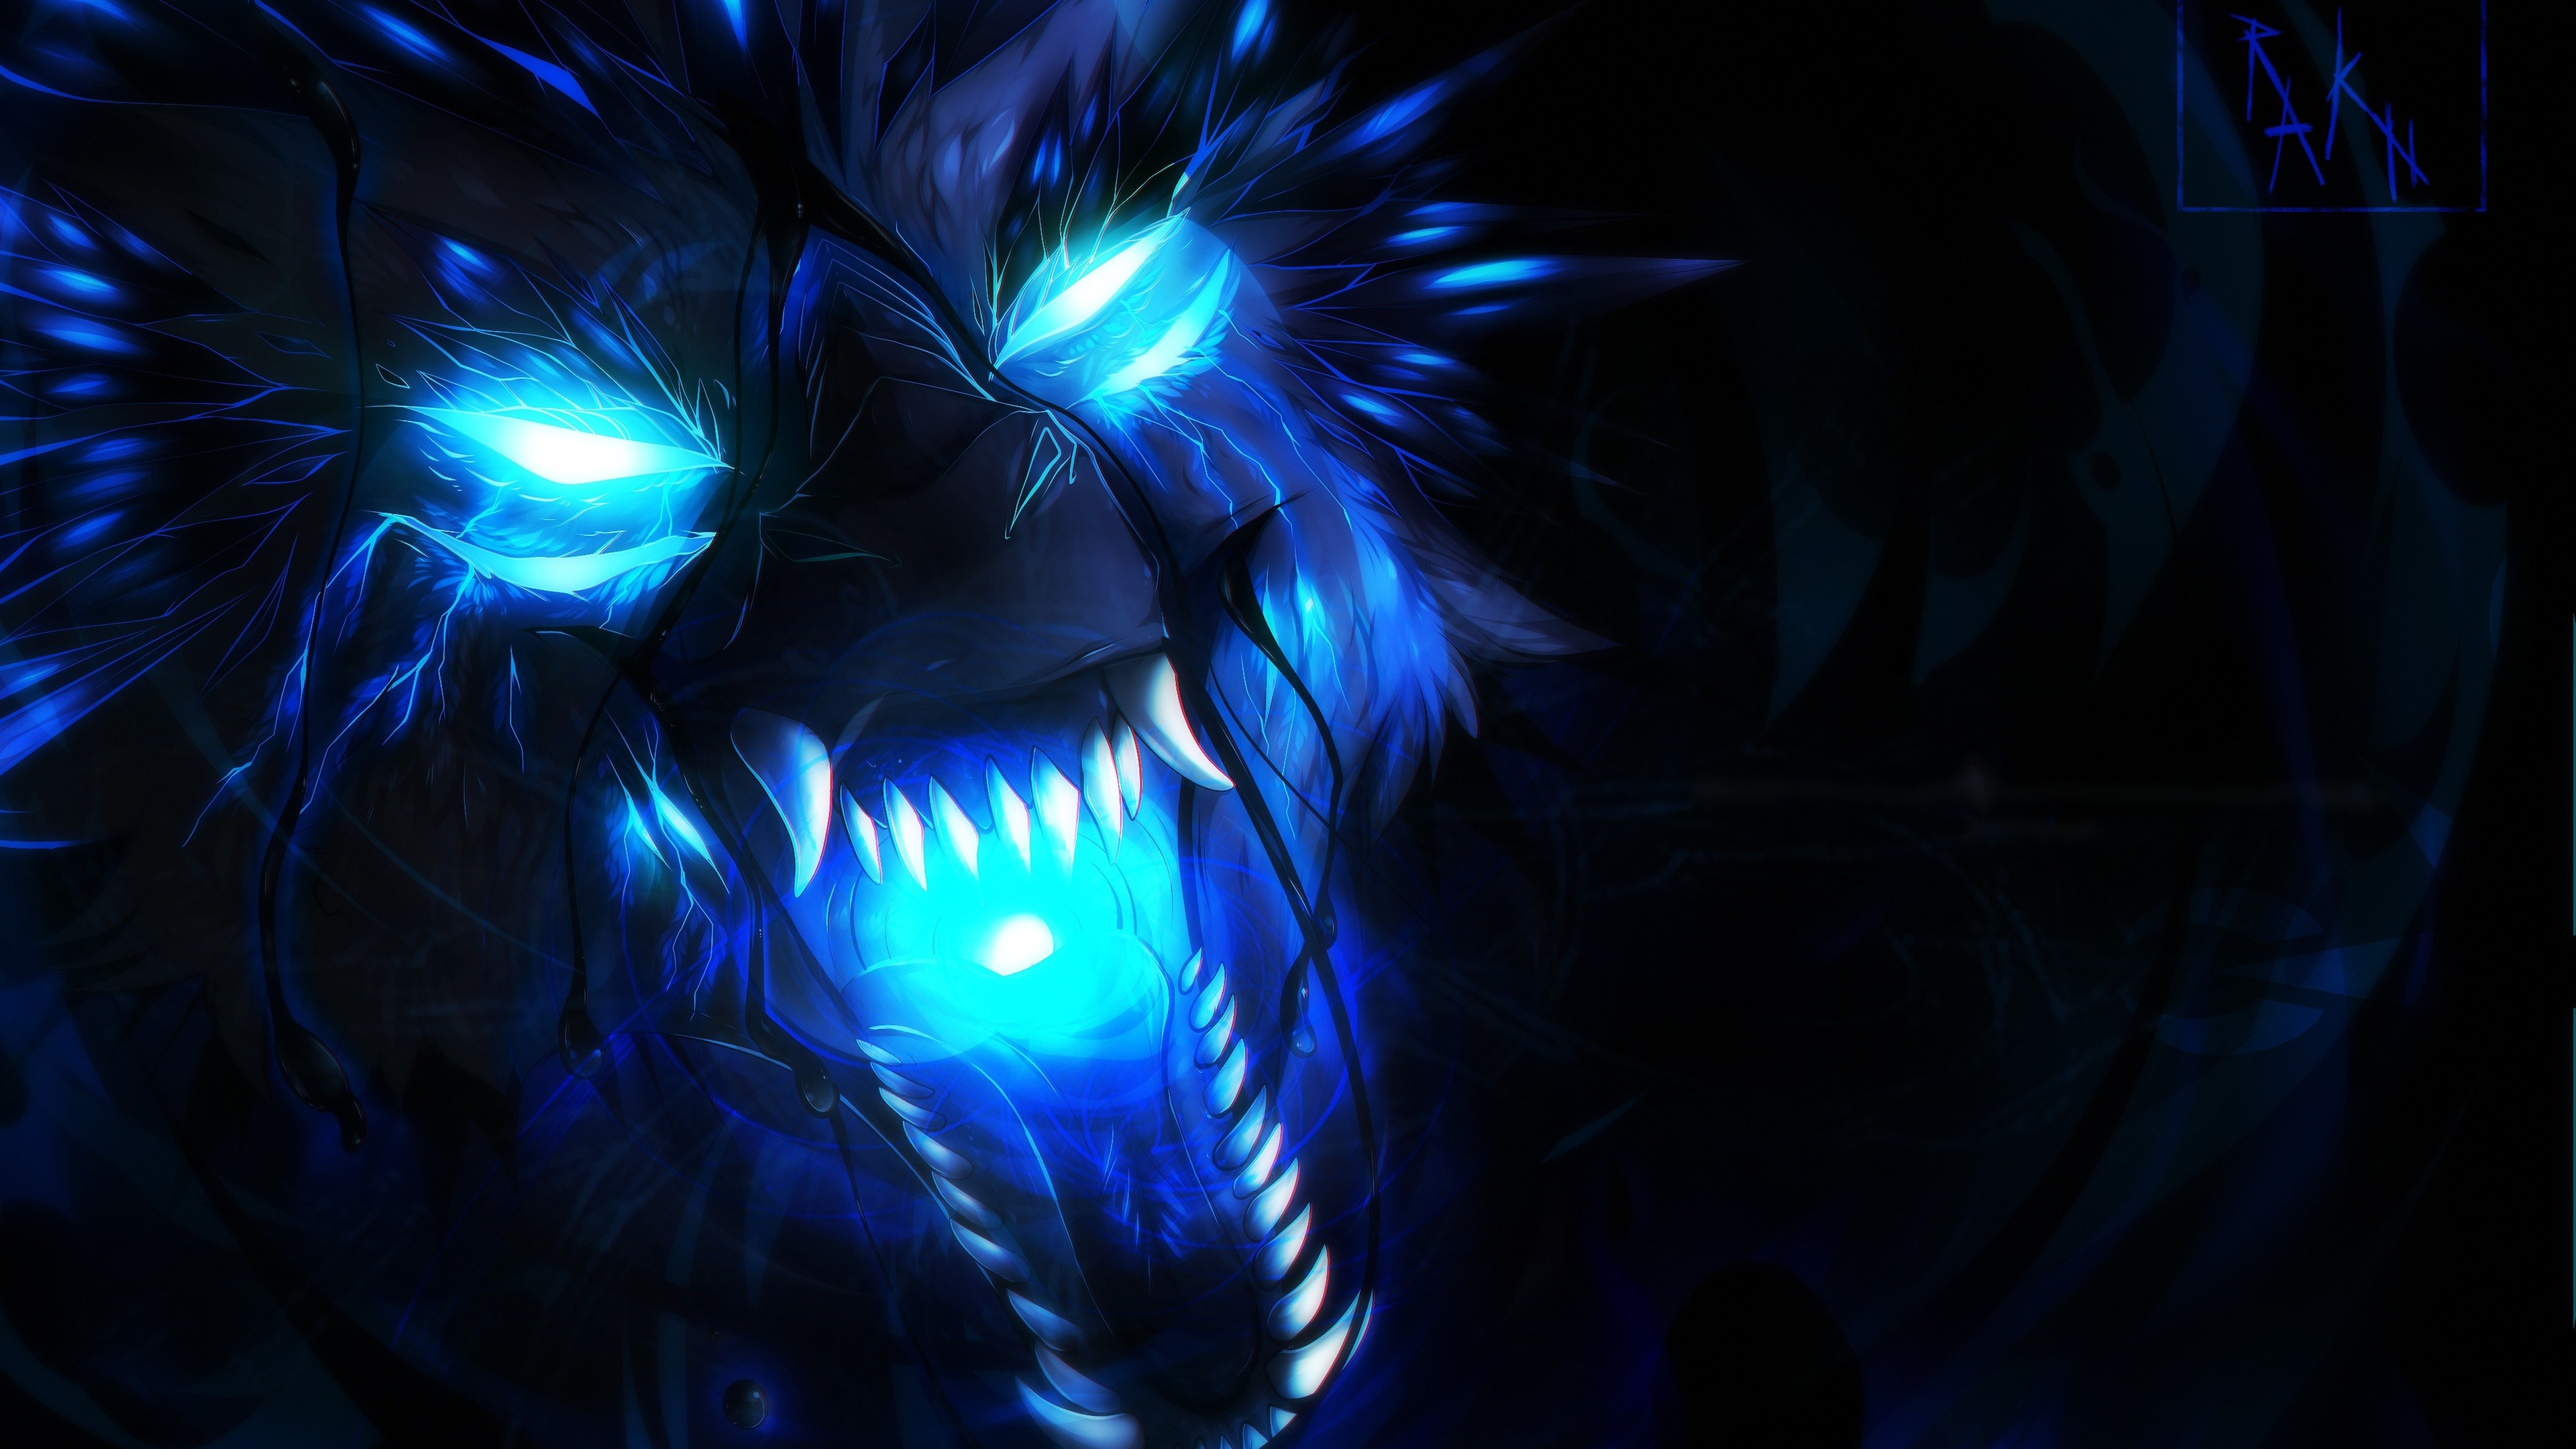 Blue Flame Wolf Wallpaper 75 Images